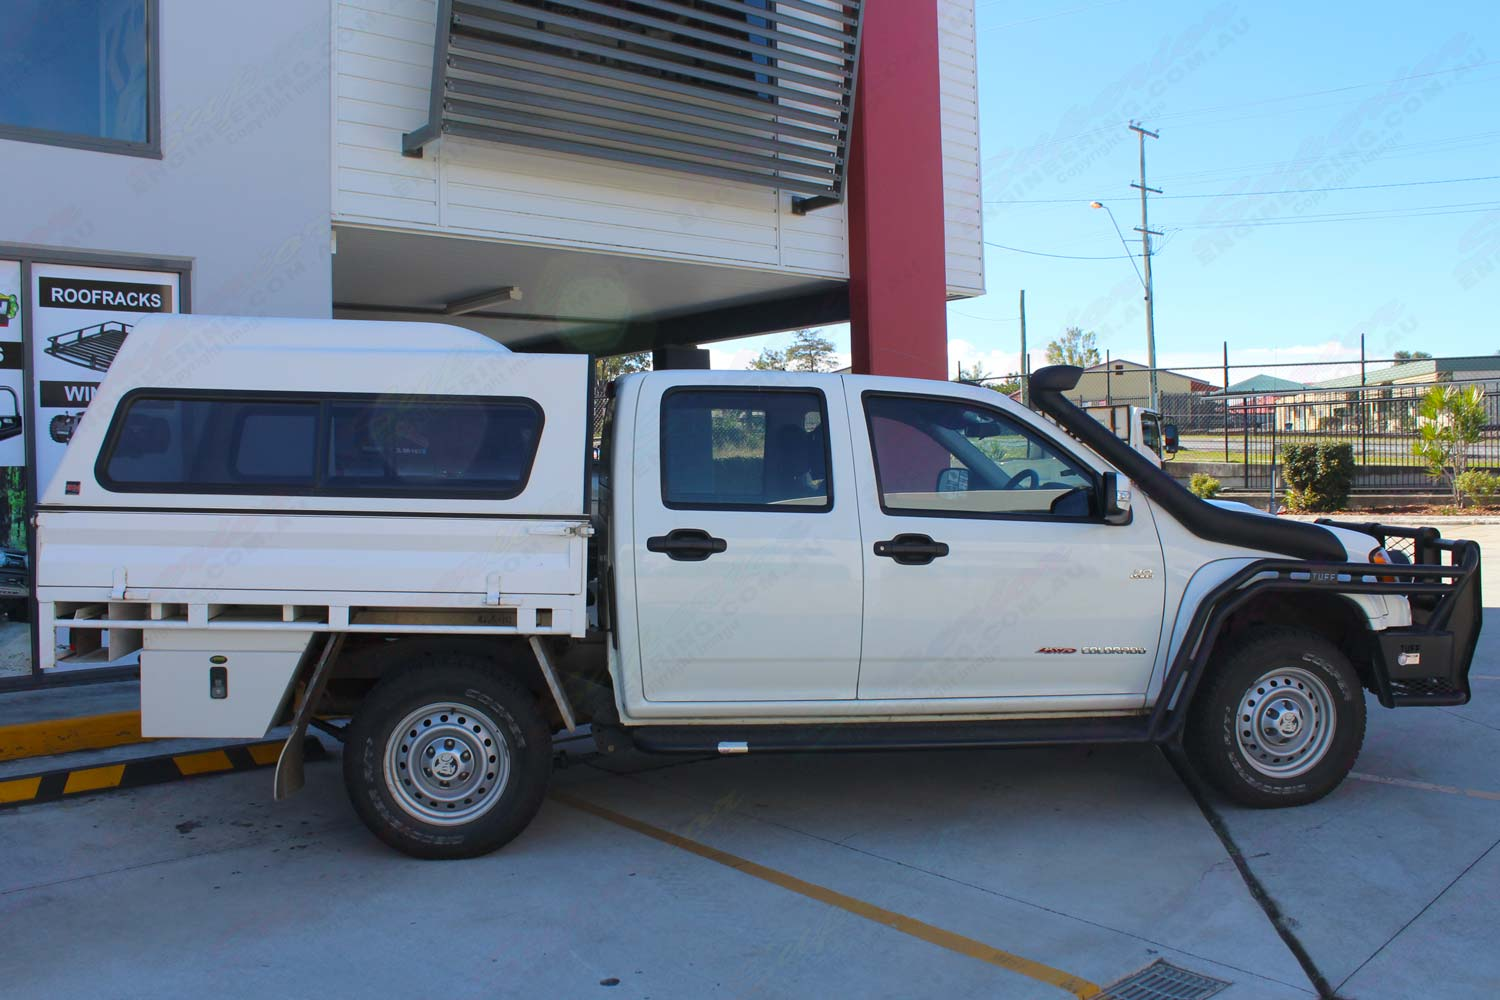 Right side view of a white Holden Colorado dual cab fitted with a 40mm Bilstein lift kit and AirBag Man air suspension helper kit for leaf springs